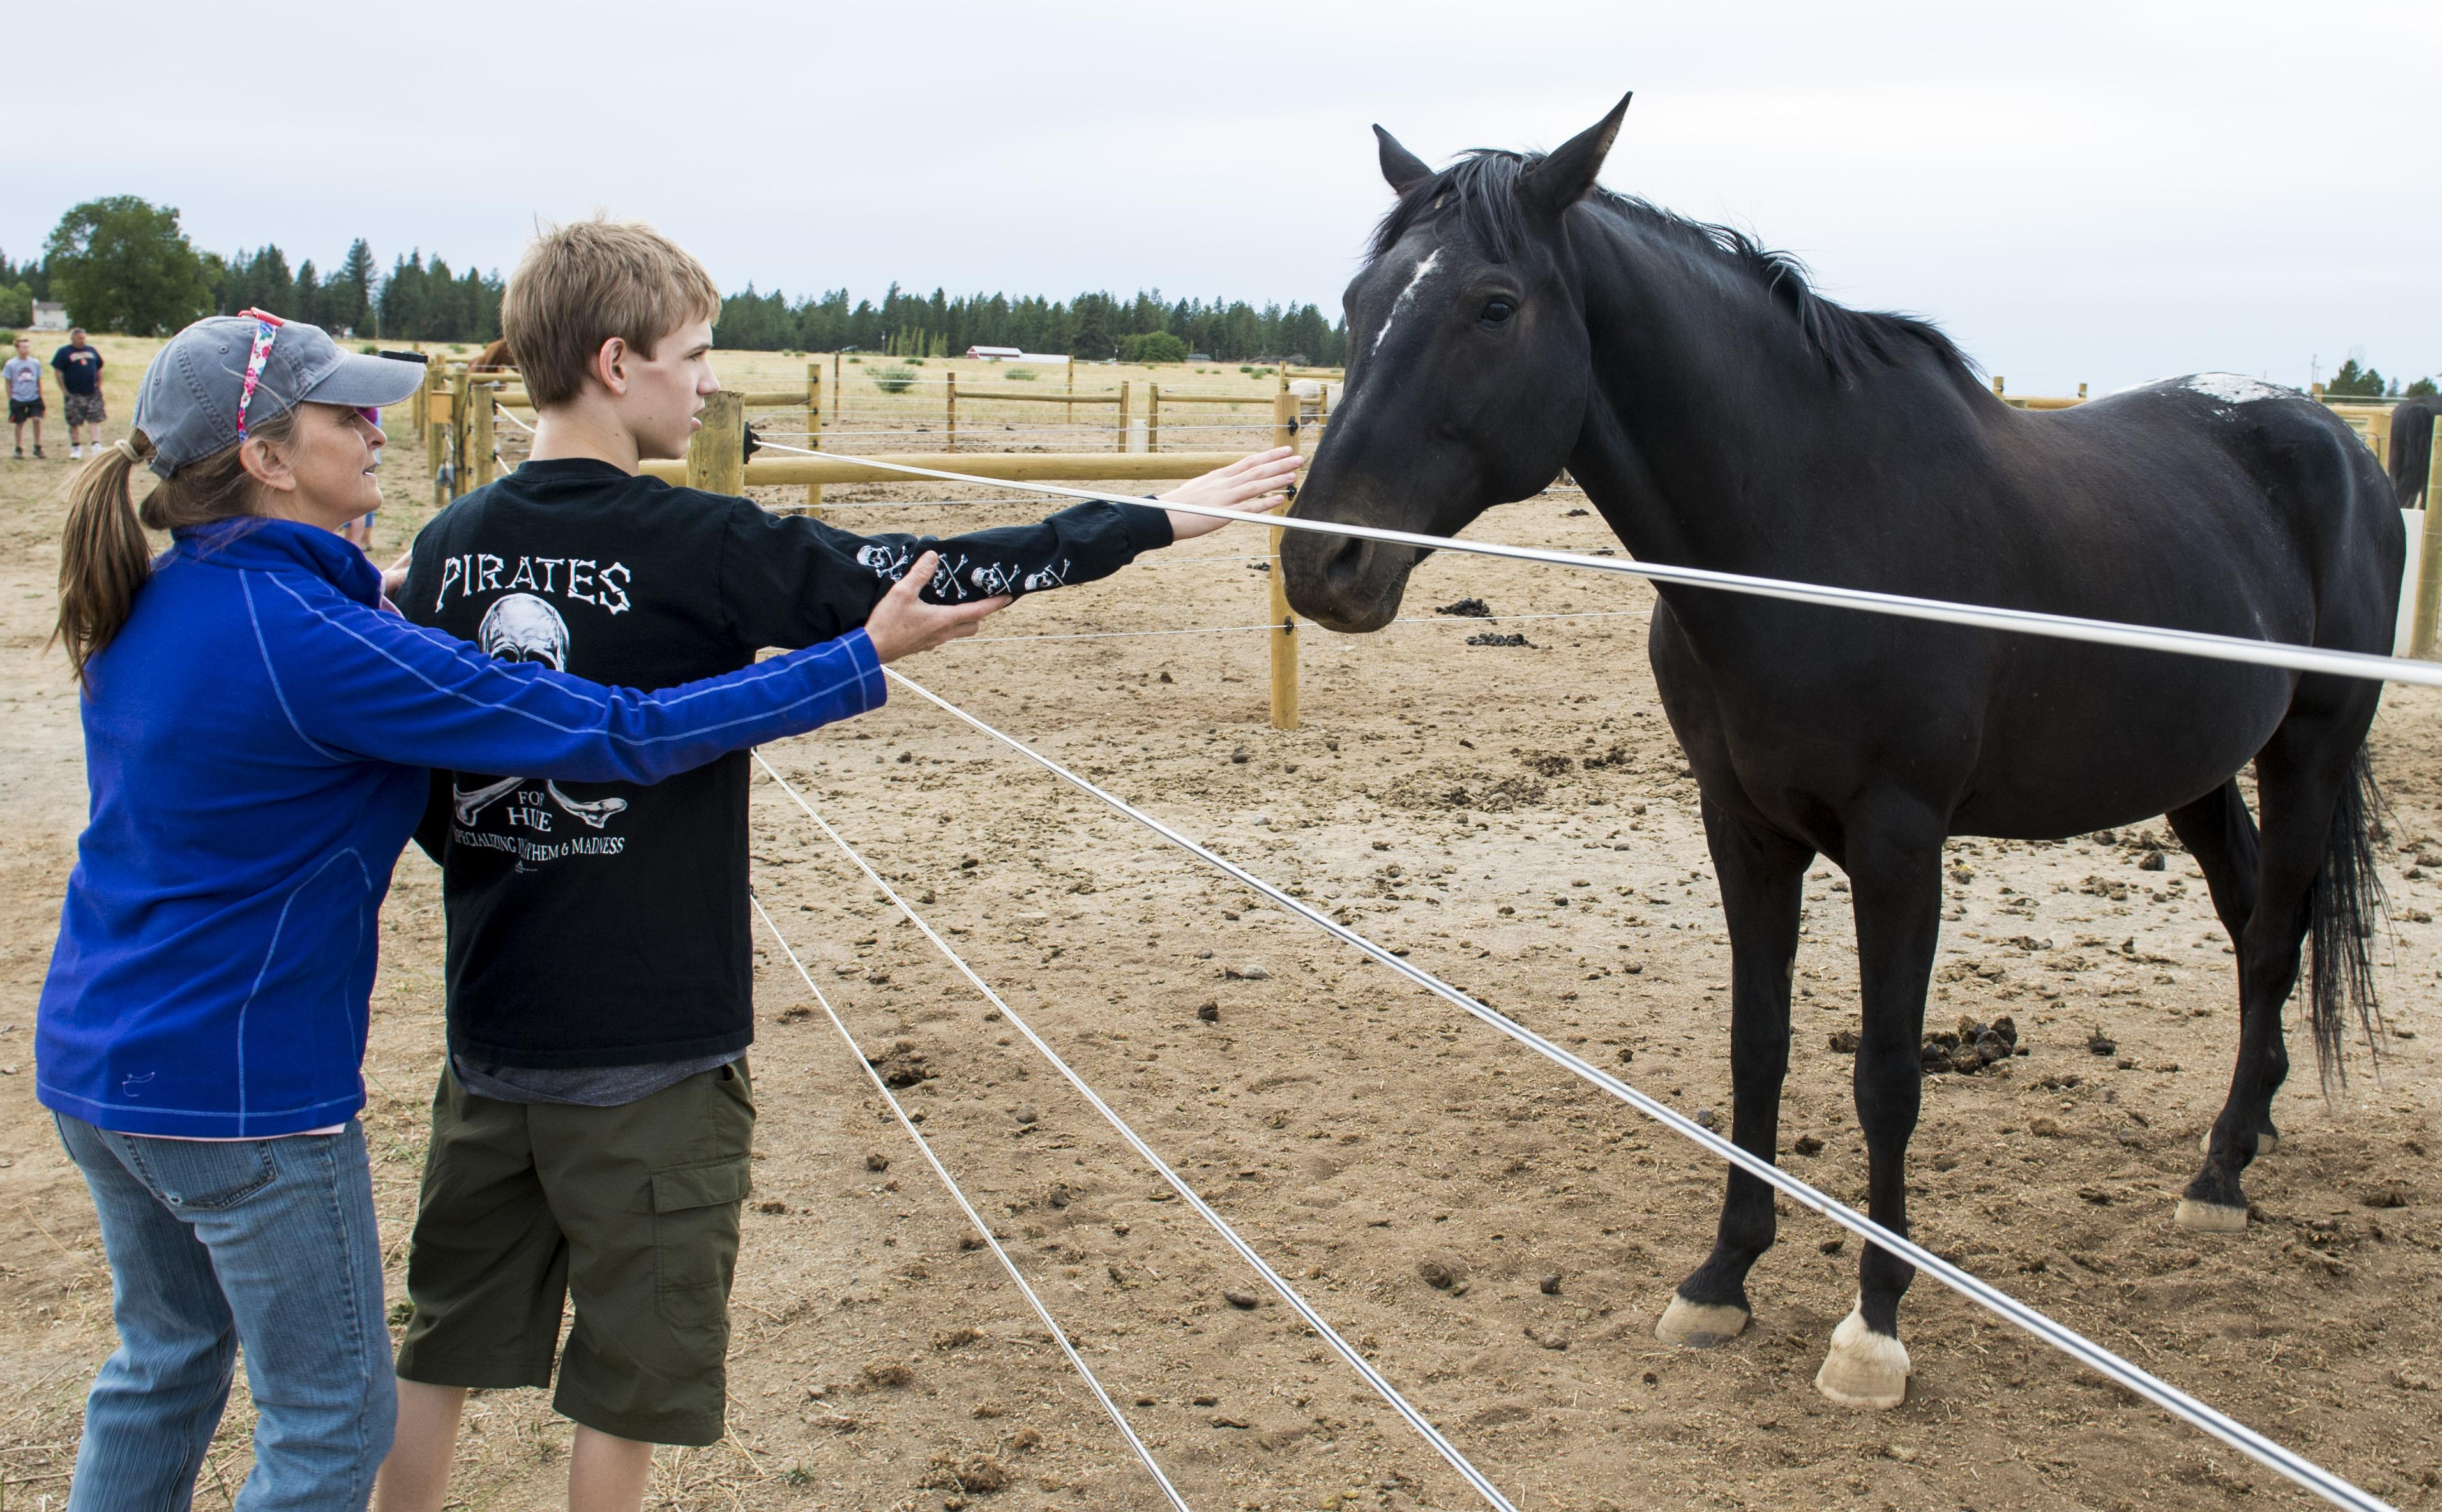 Free rein therapeutic riding makes home at spokane equestrian center during an open house free rein volunteer linda carney helps trevin hansen 14 m4hsunfo